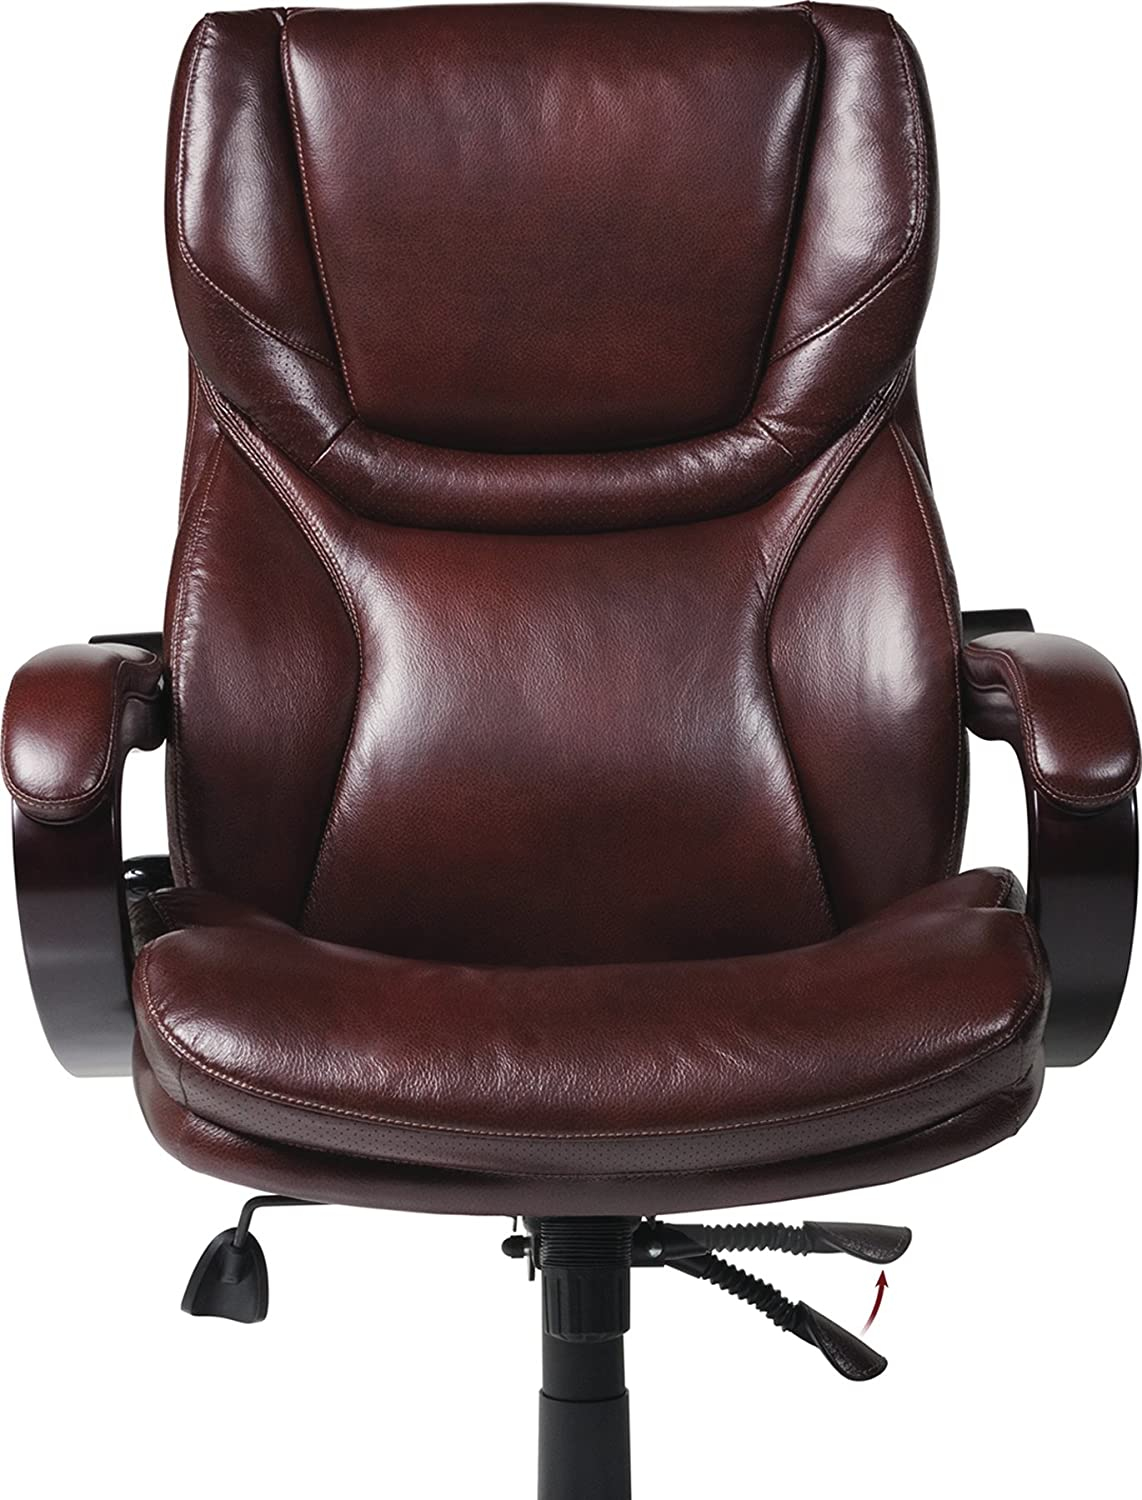 Office Chair Leather Amazoncom Serta Bonded Leather Big Tall Executive Chair Brown